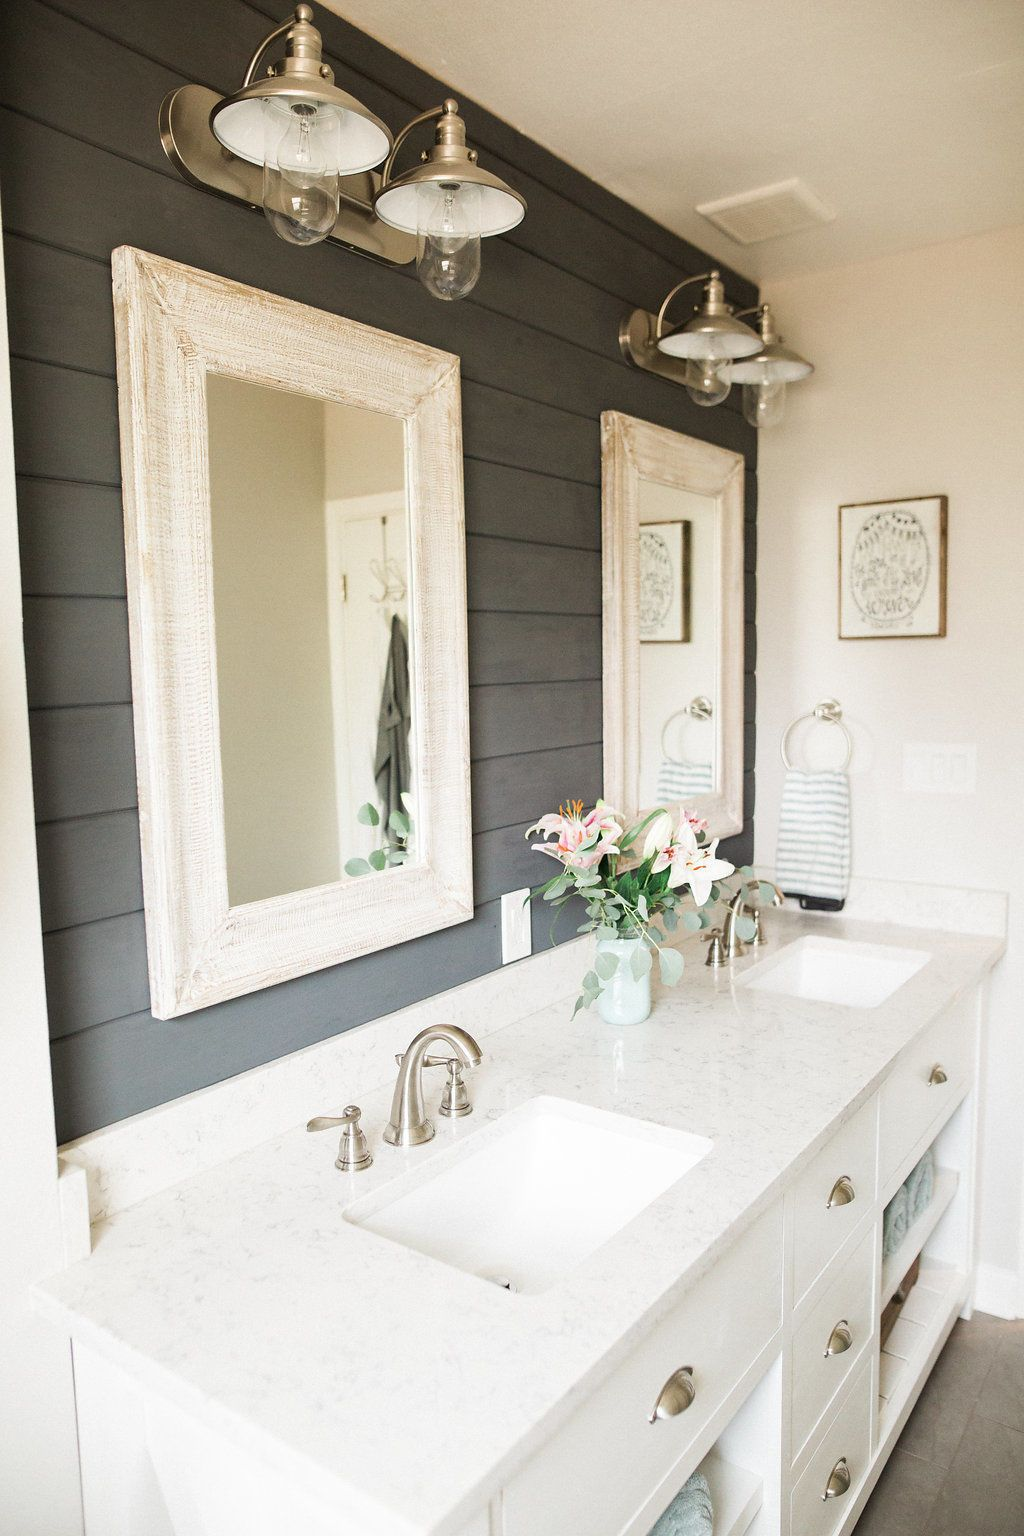 This Bathroom Makeover Will Convince You to Embrace Shiplap | House ...